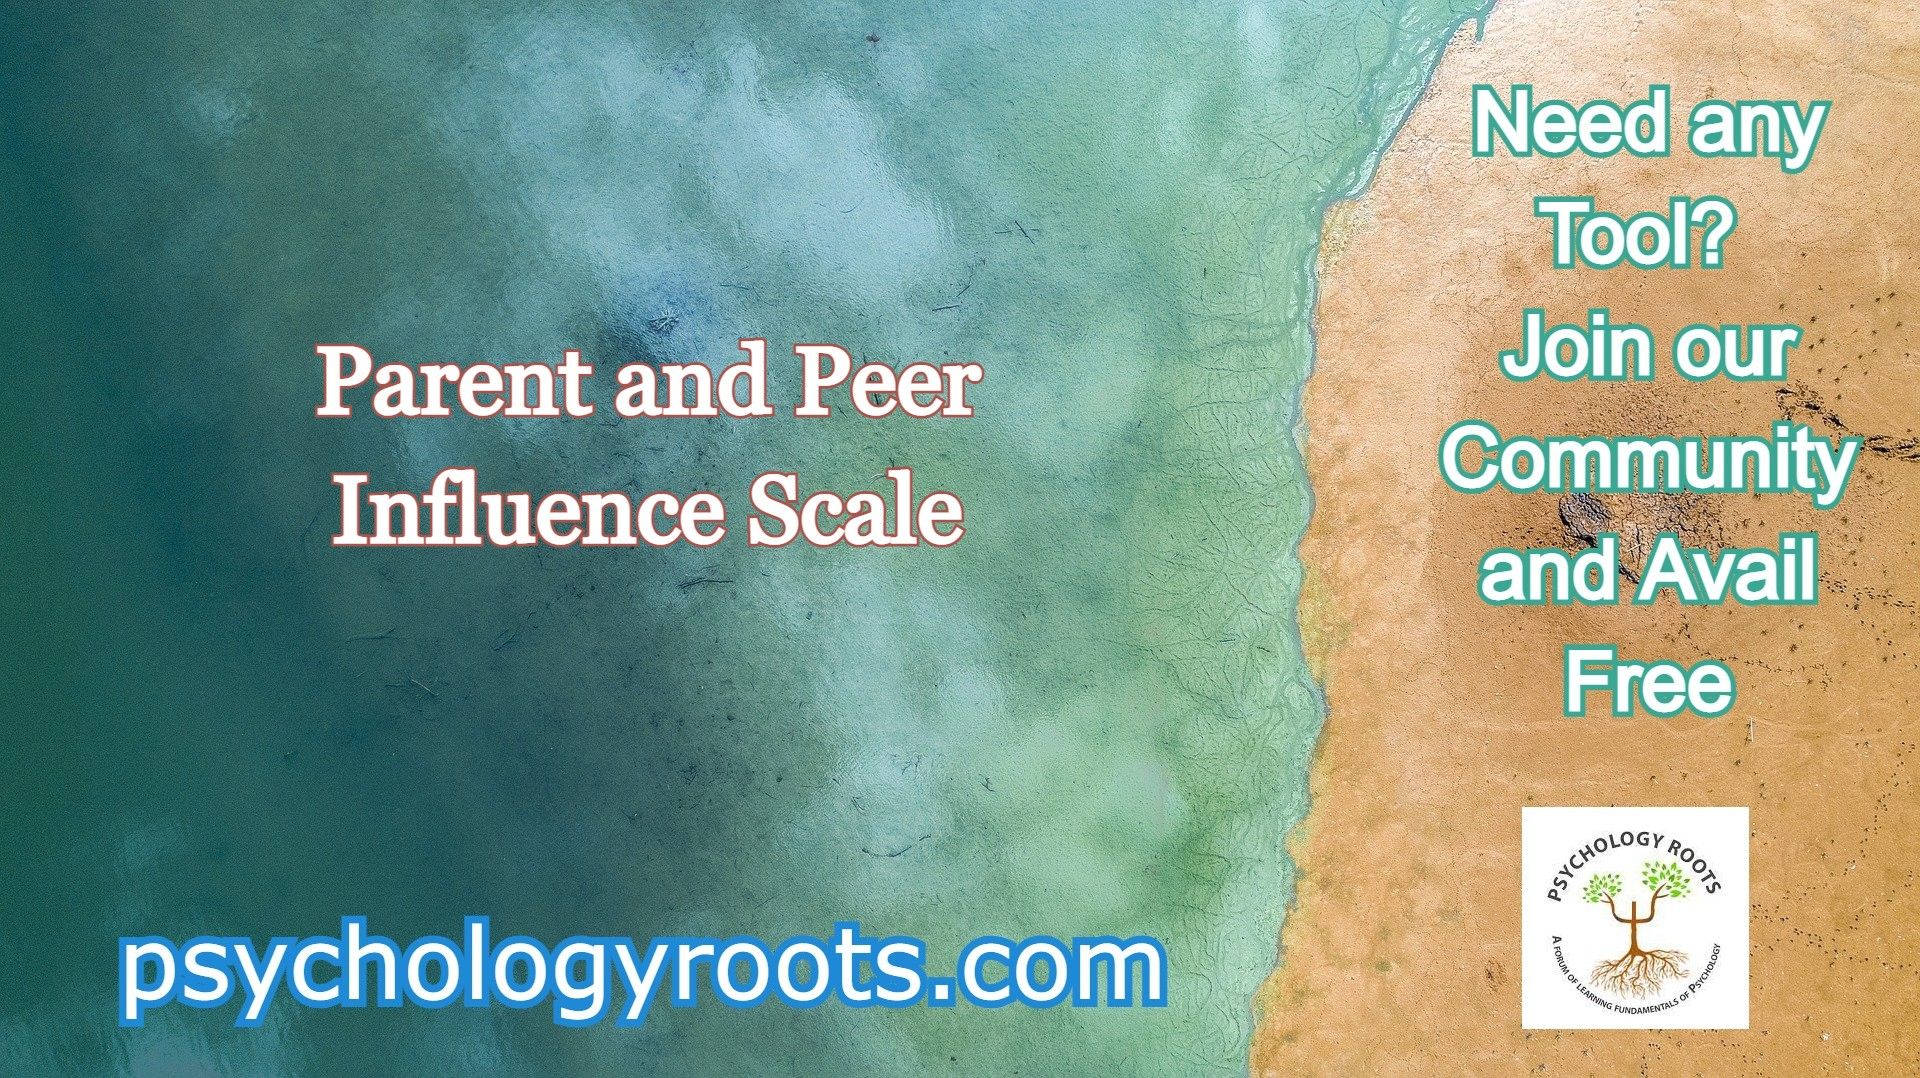 Parent and Peer Influence Scale